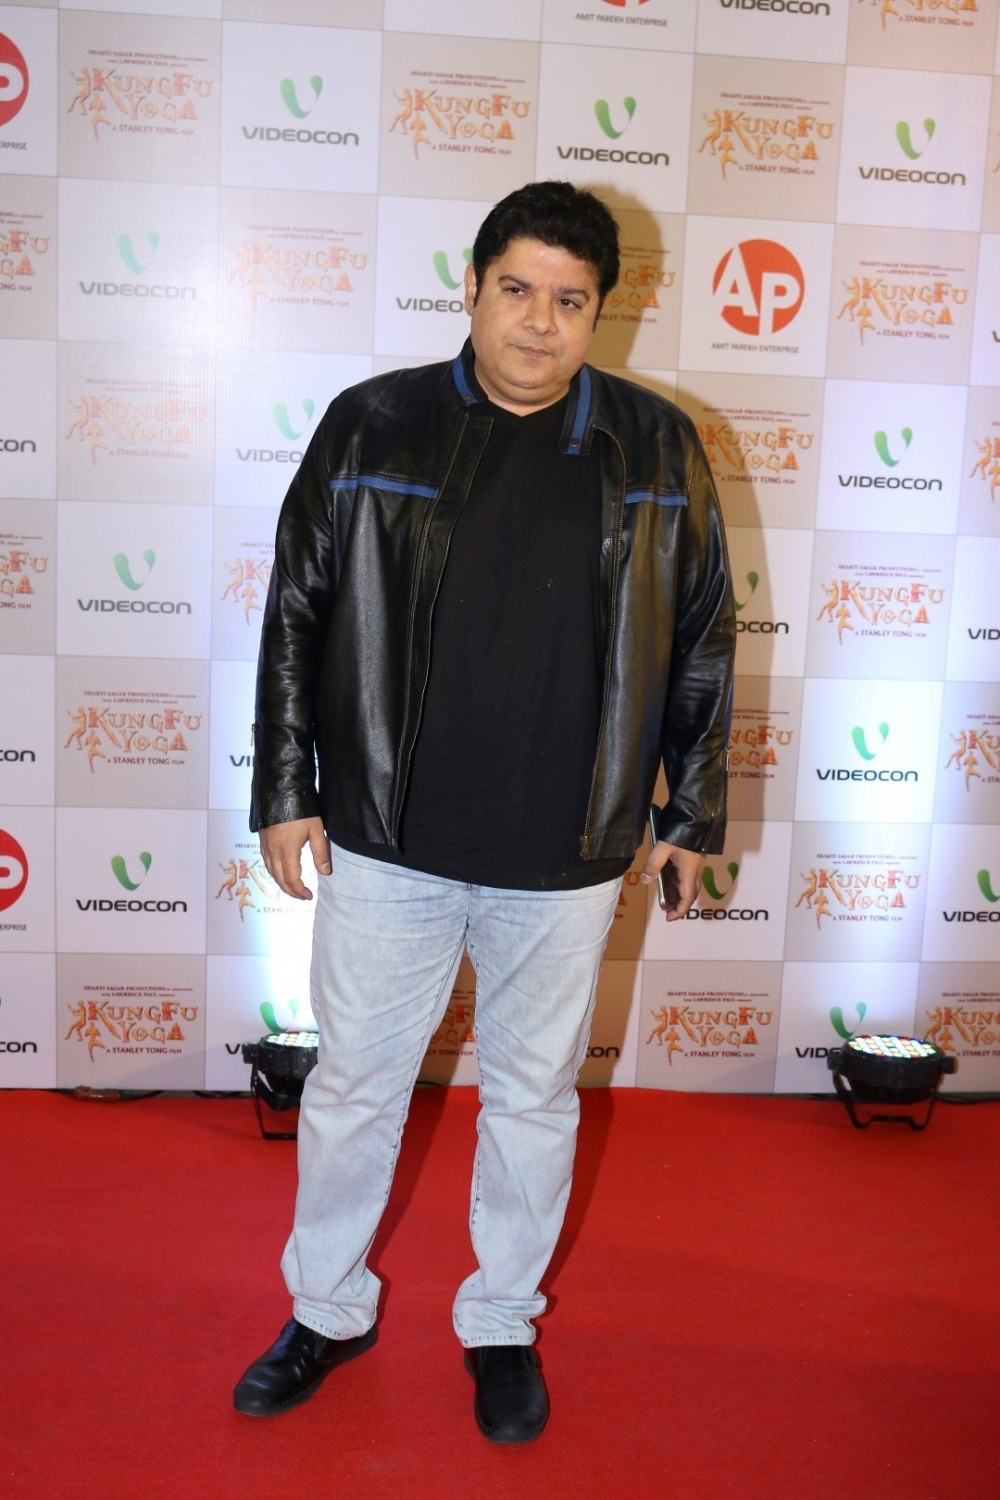 Mumbai: Filmmaker Sajid Khan during the screening of film Kung Fu Yoga in Mumbai on Feb 2, 2017. (Photo: IANS)